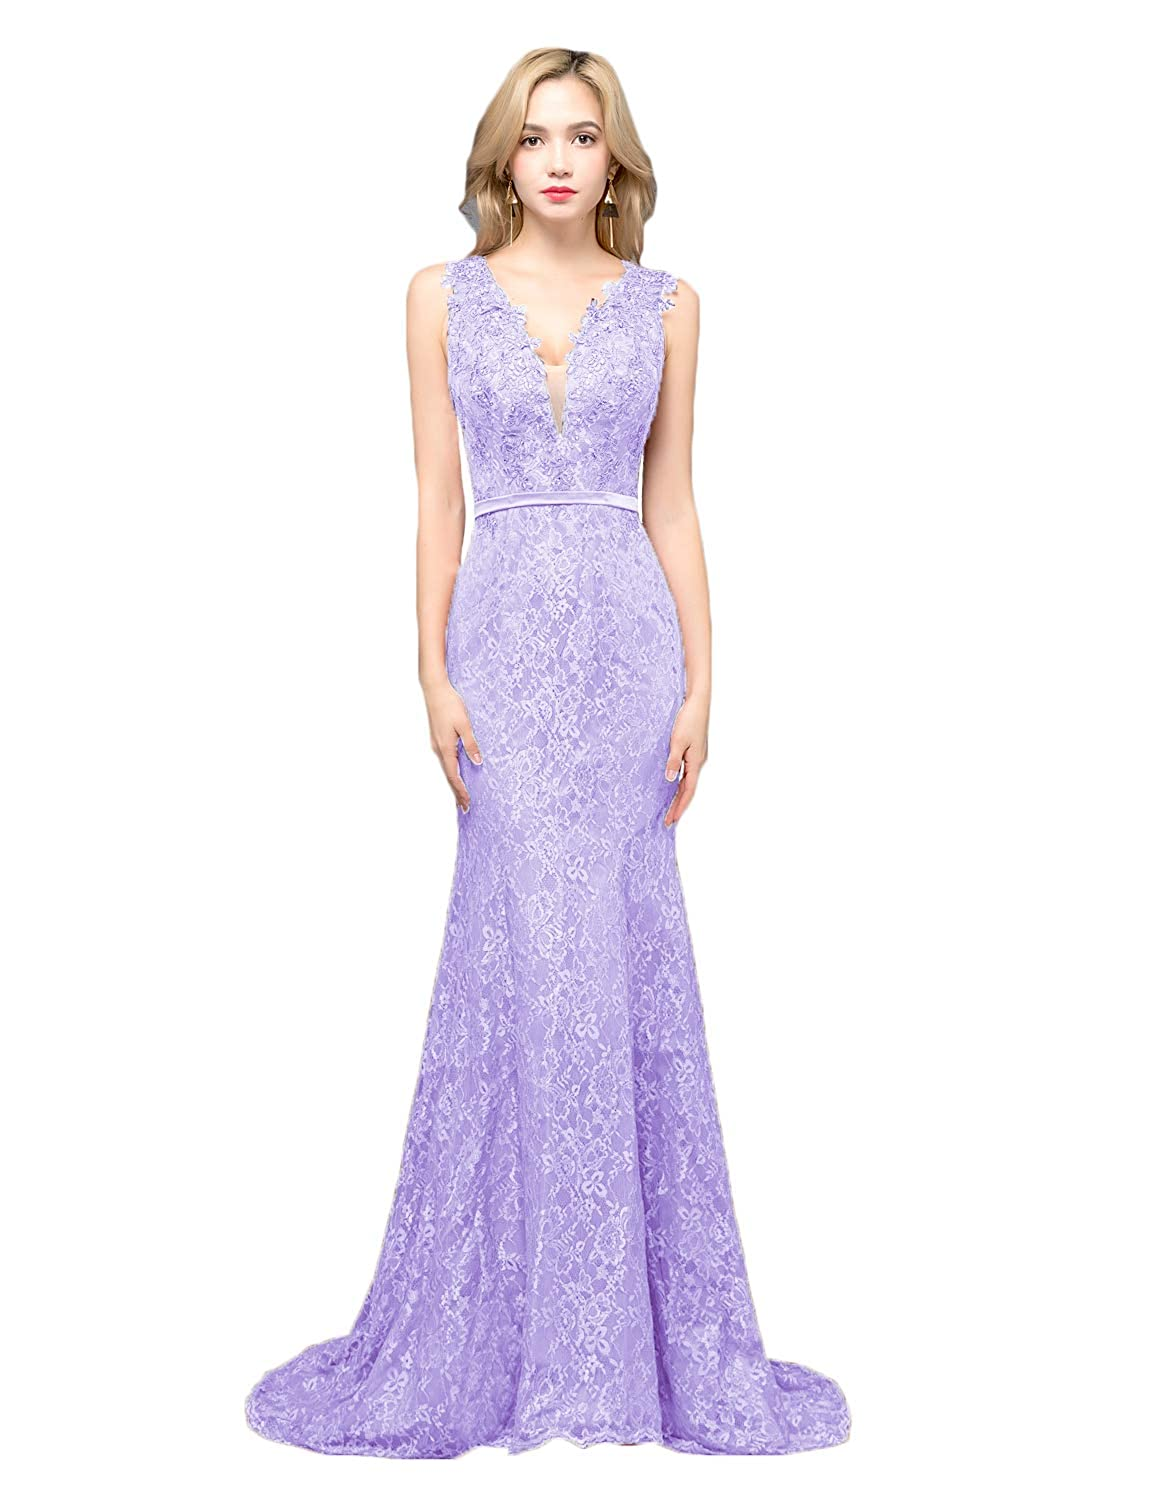 Lavender CIRCLEWLD Sheer Plunging V Neck Lace Prom Dresses Mermaid Evening Gown Womens P197